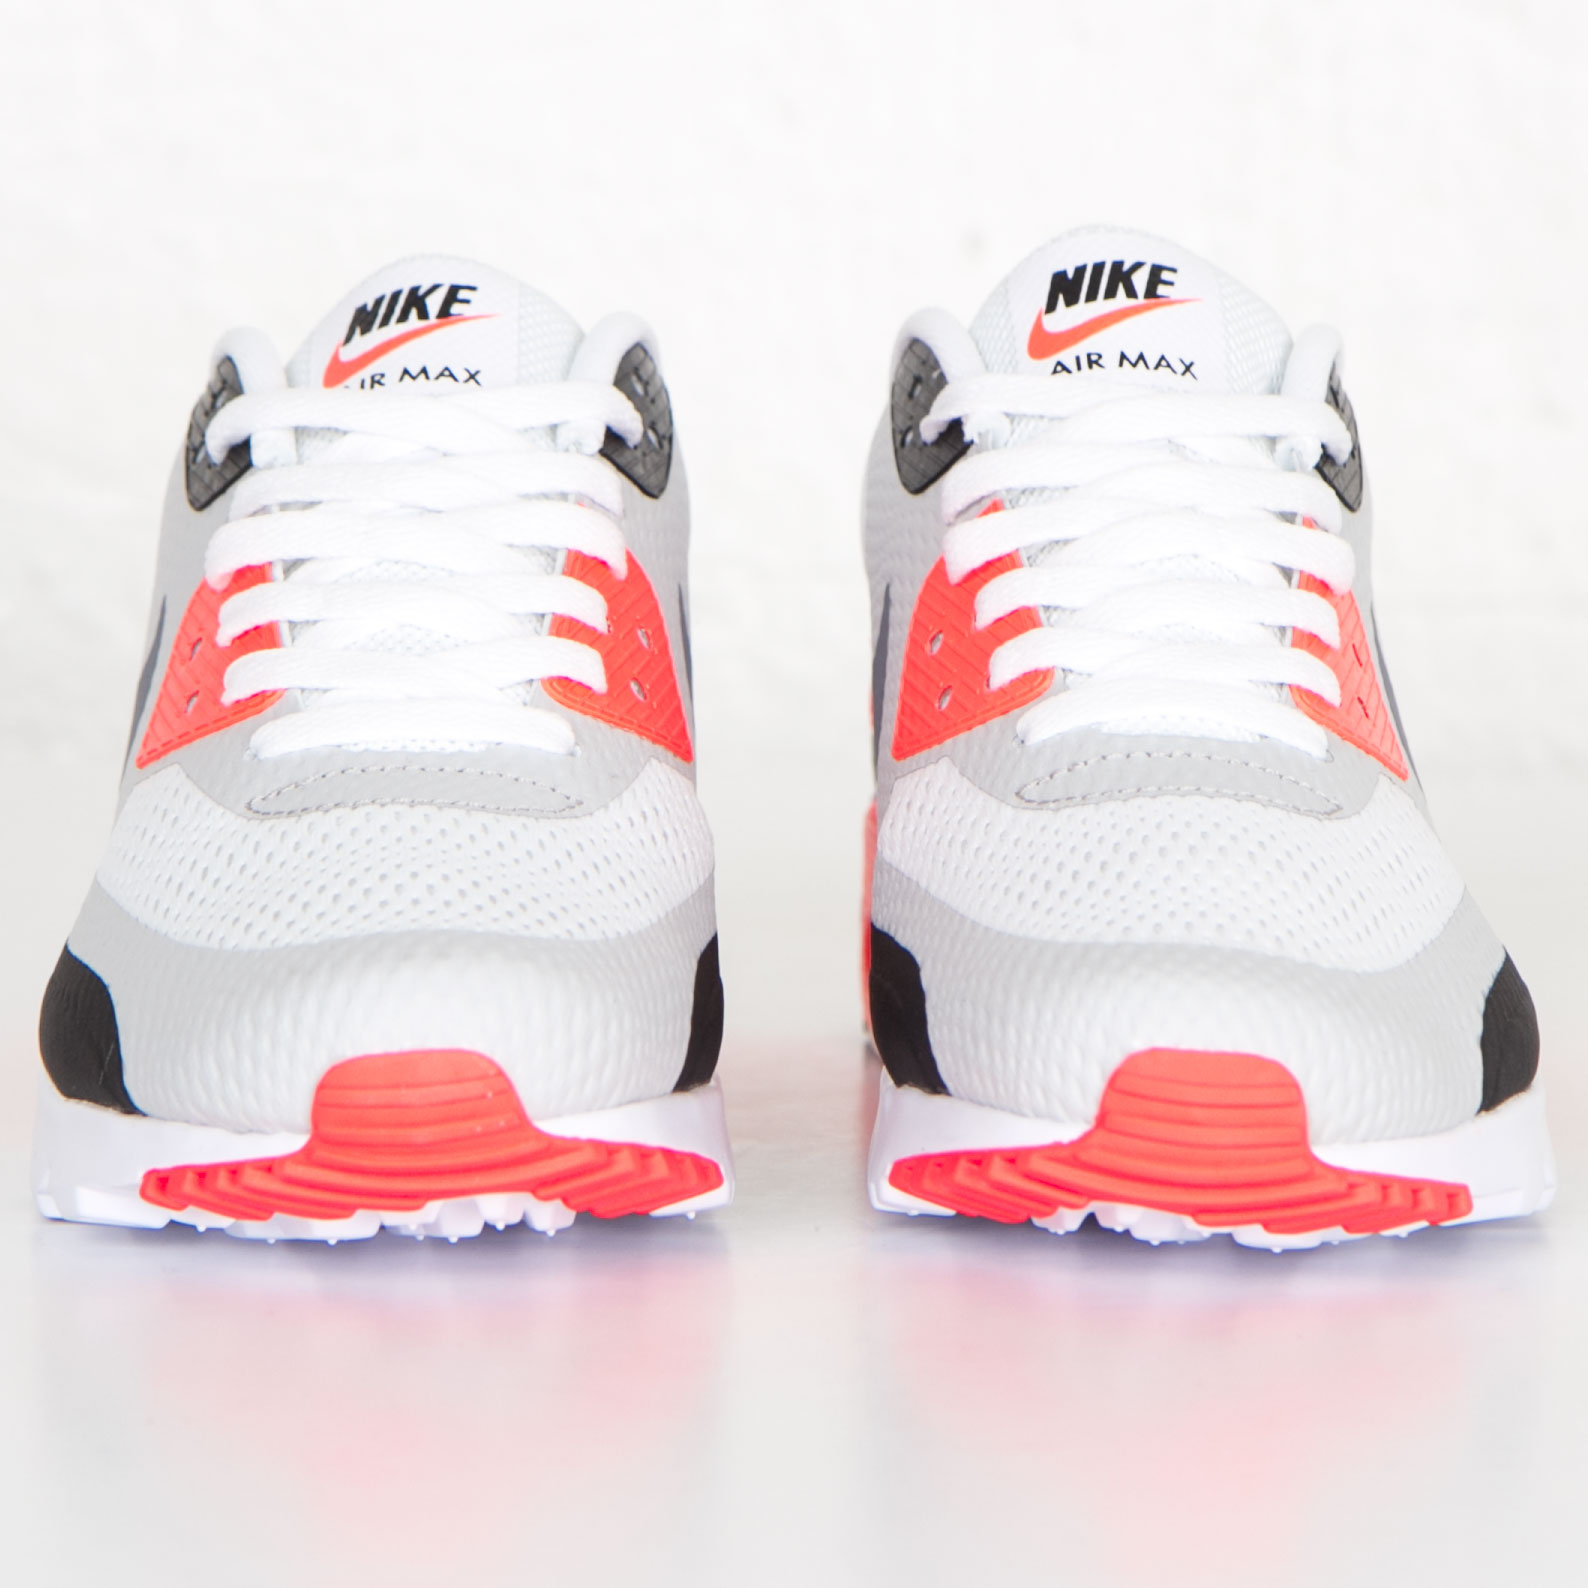 new arrival 5fd8a 71ab7 Nike Air Max 90 Ultra Essential - 819474-106 - Sneakersnstuff   sneakers    streetwear online since 1999